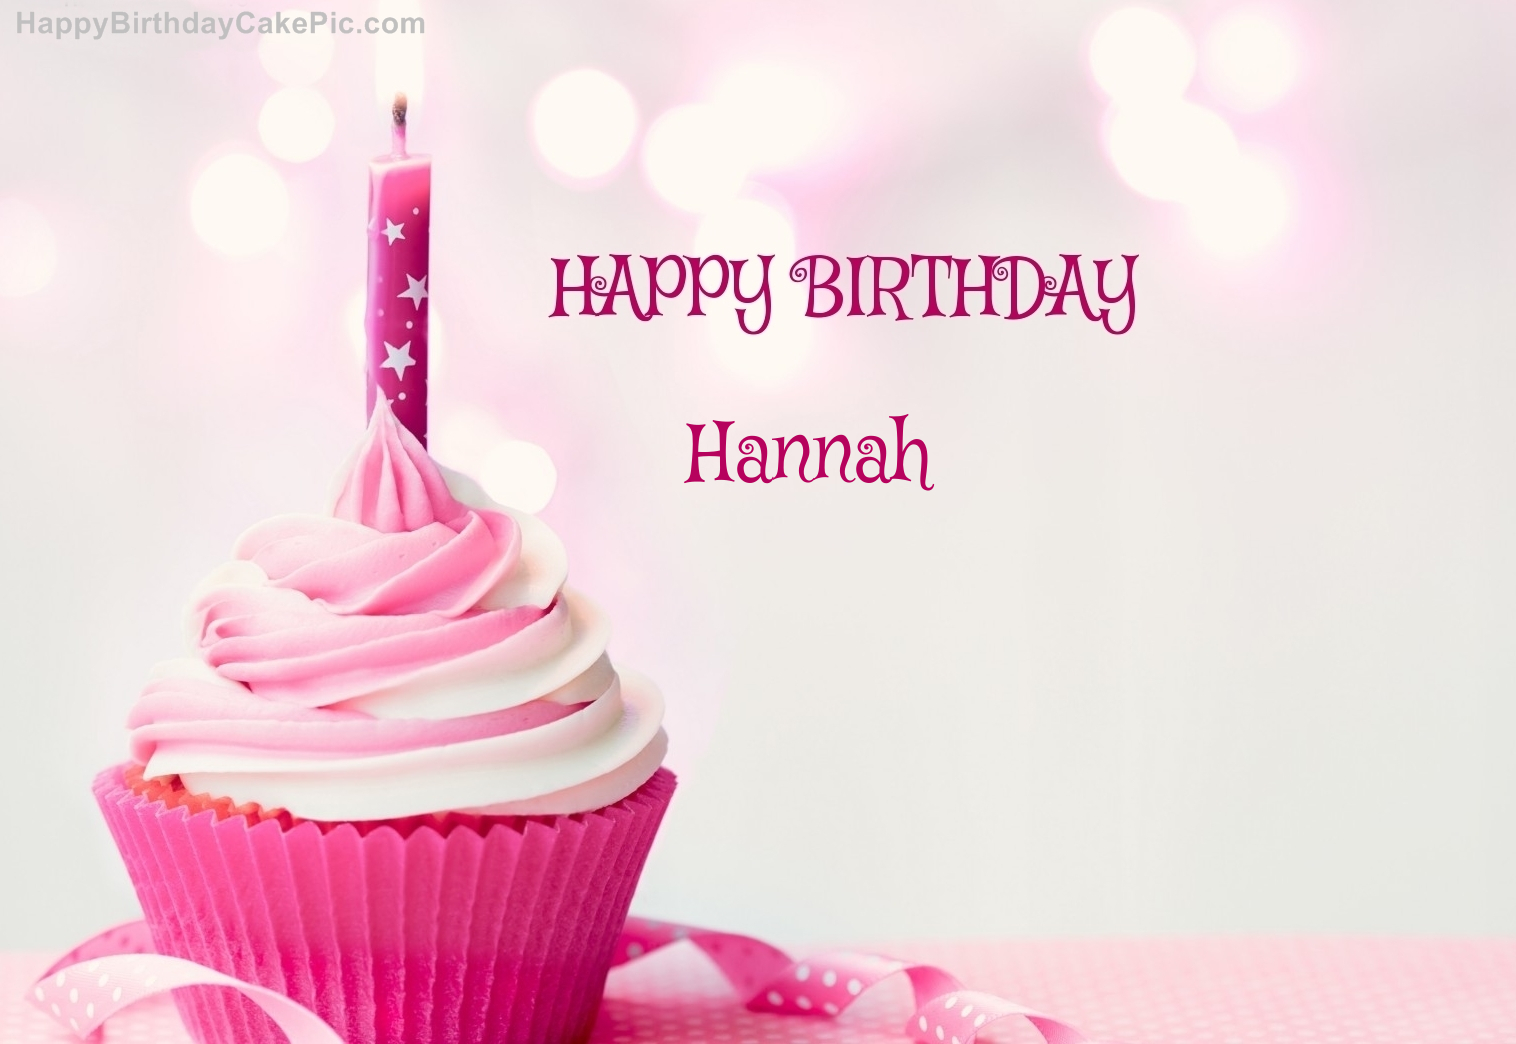 Happy Birthday Cupcake Candle Pink Cake For Hannah